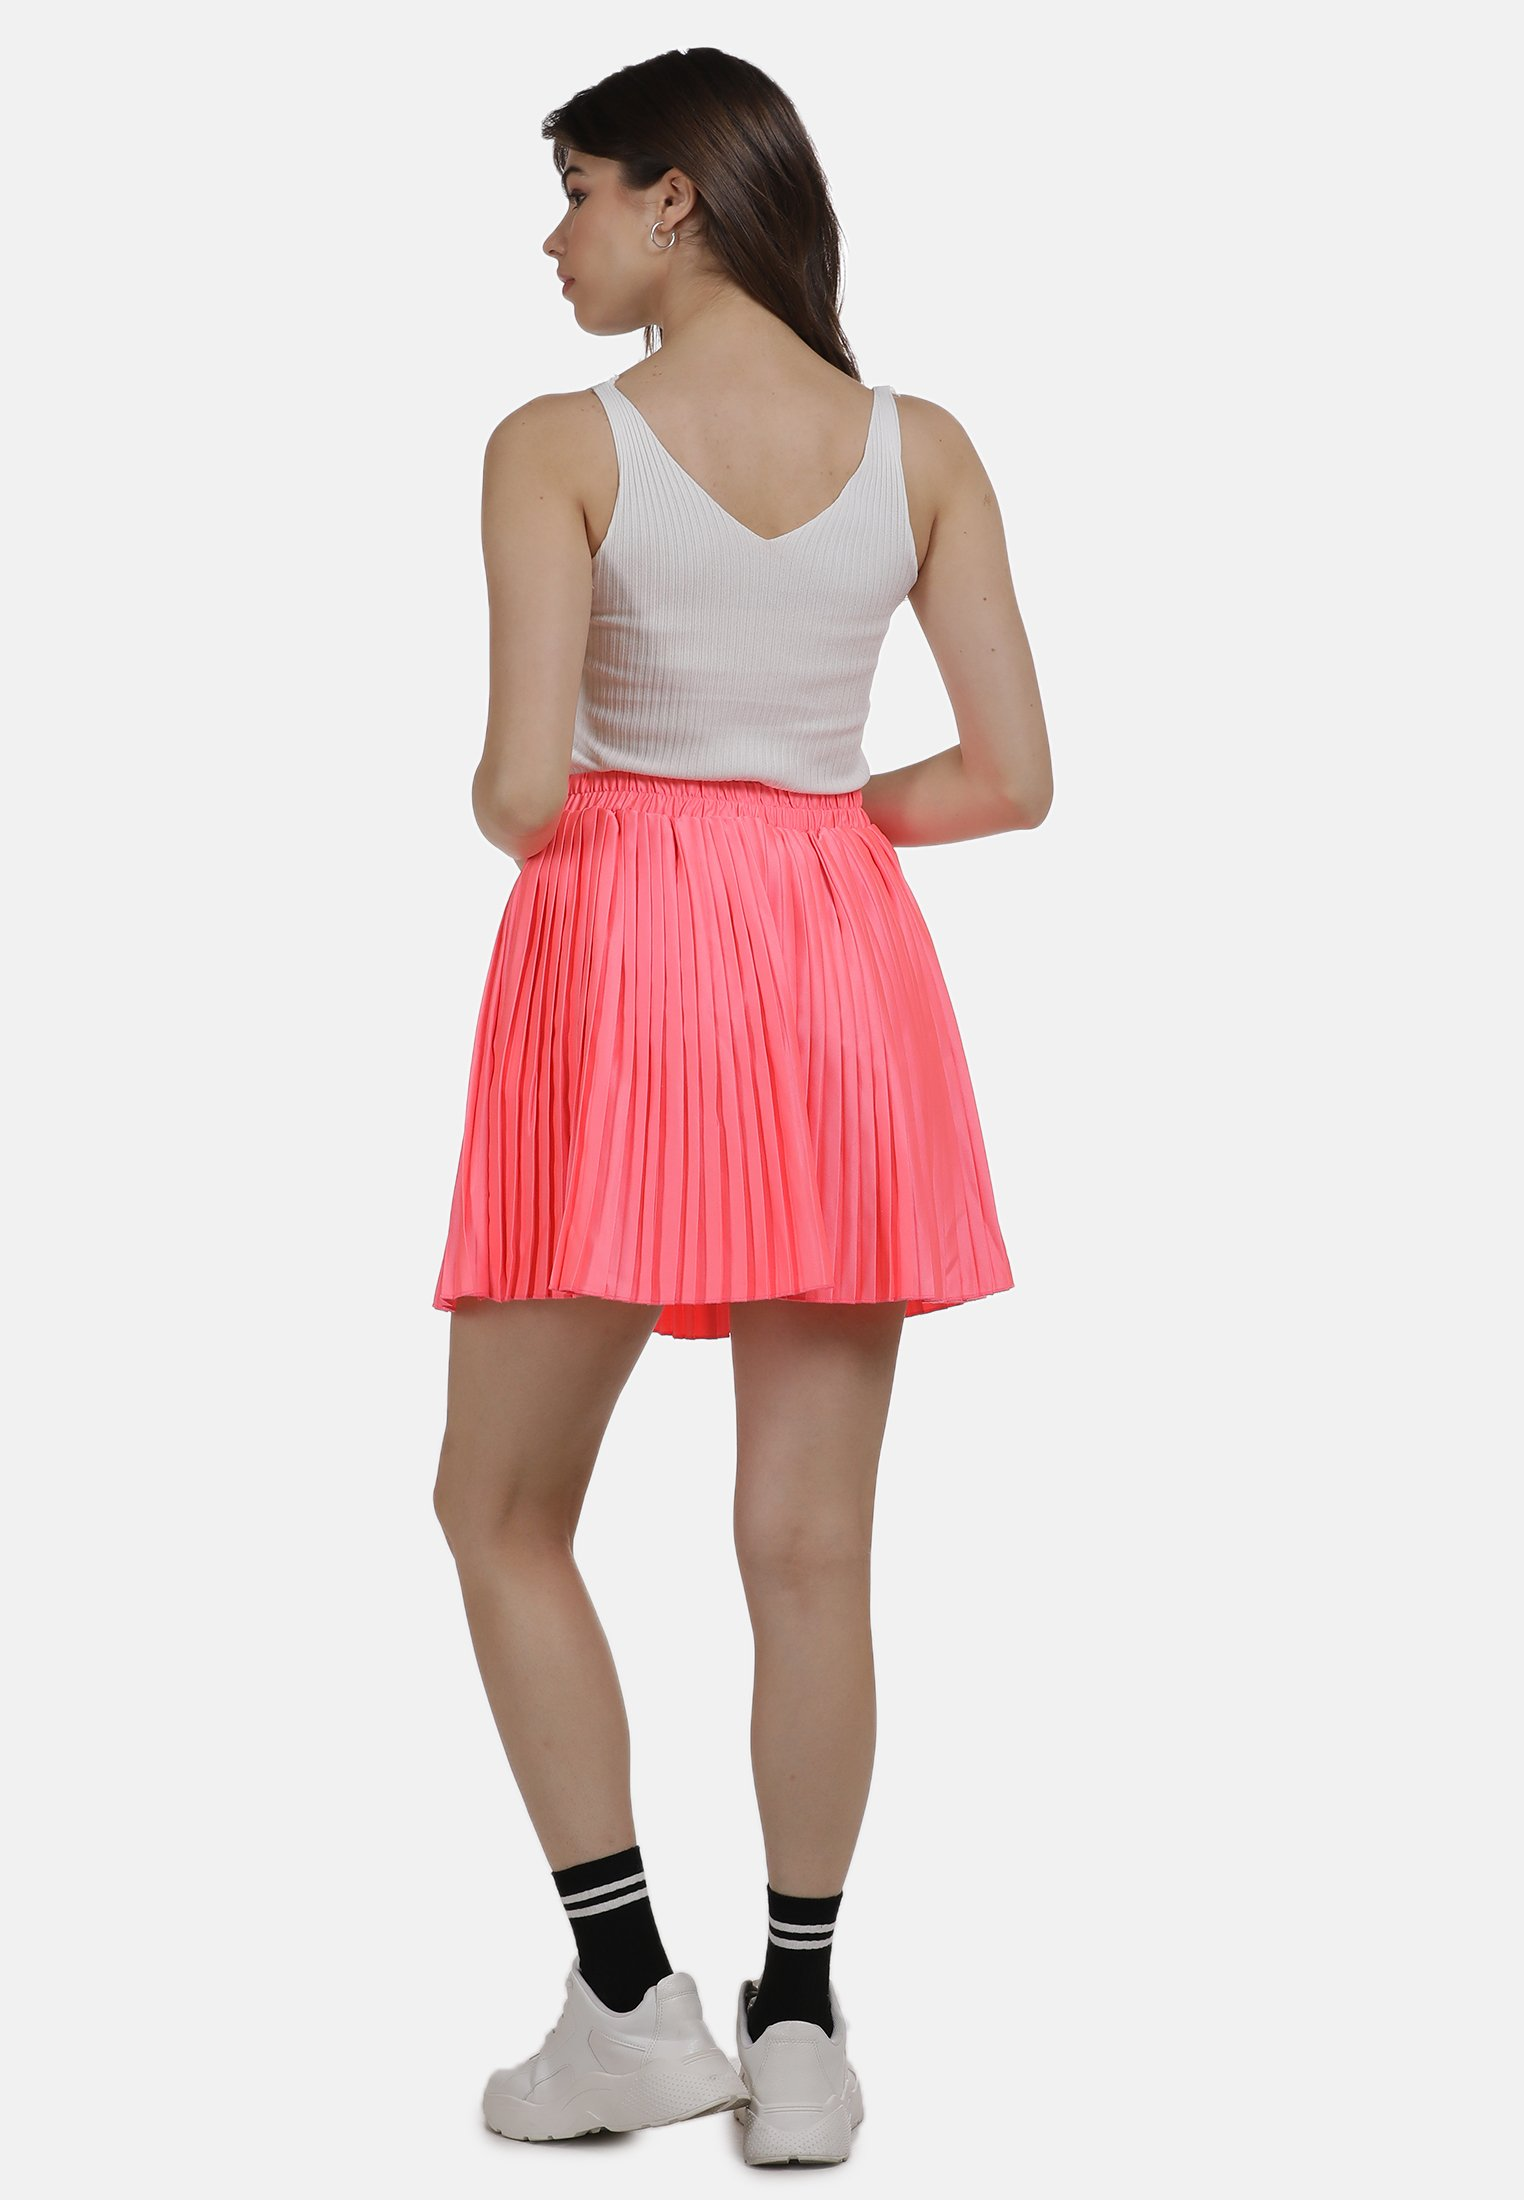 2020 Women's Clothing myMo ROCK Pleated skirt neon pink W3dUFb32y